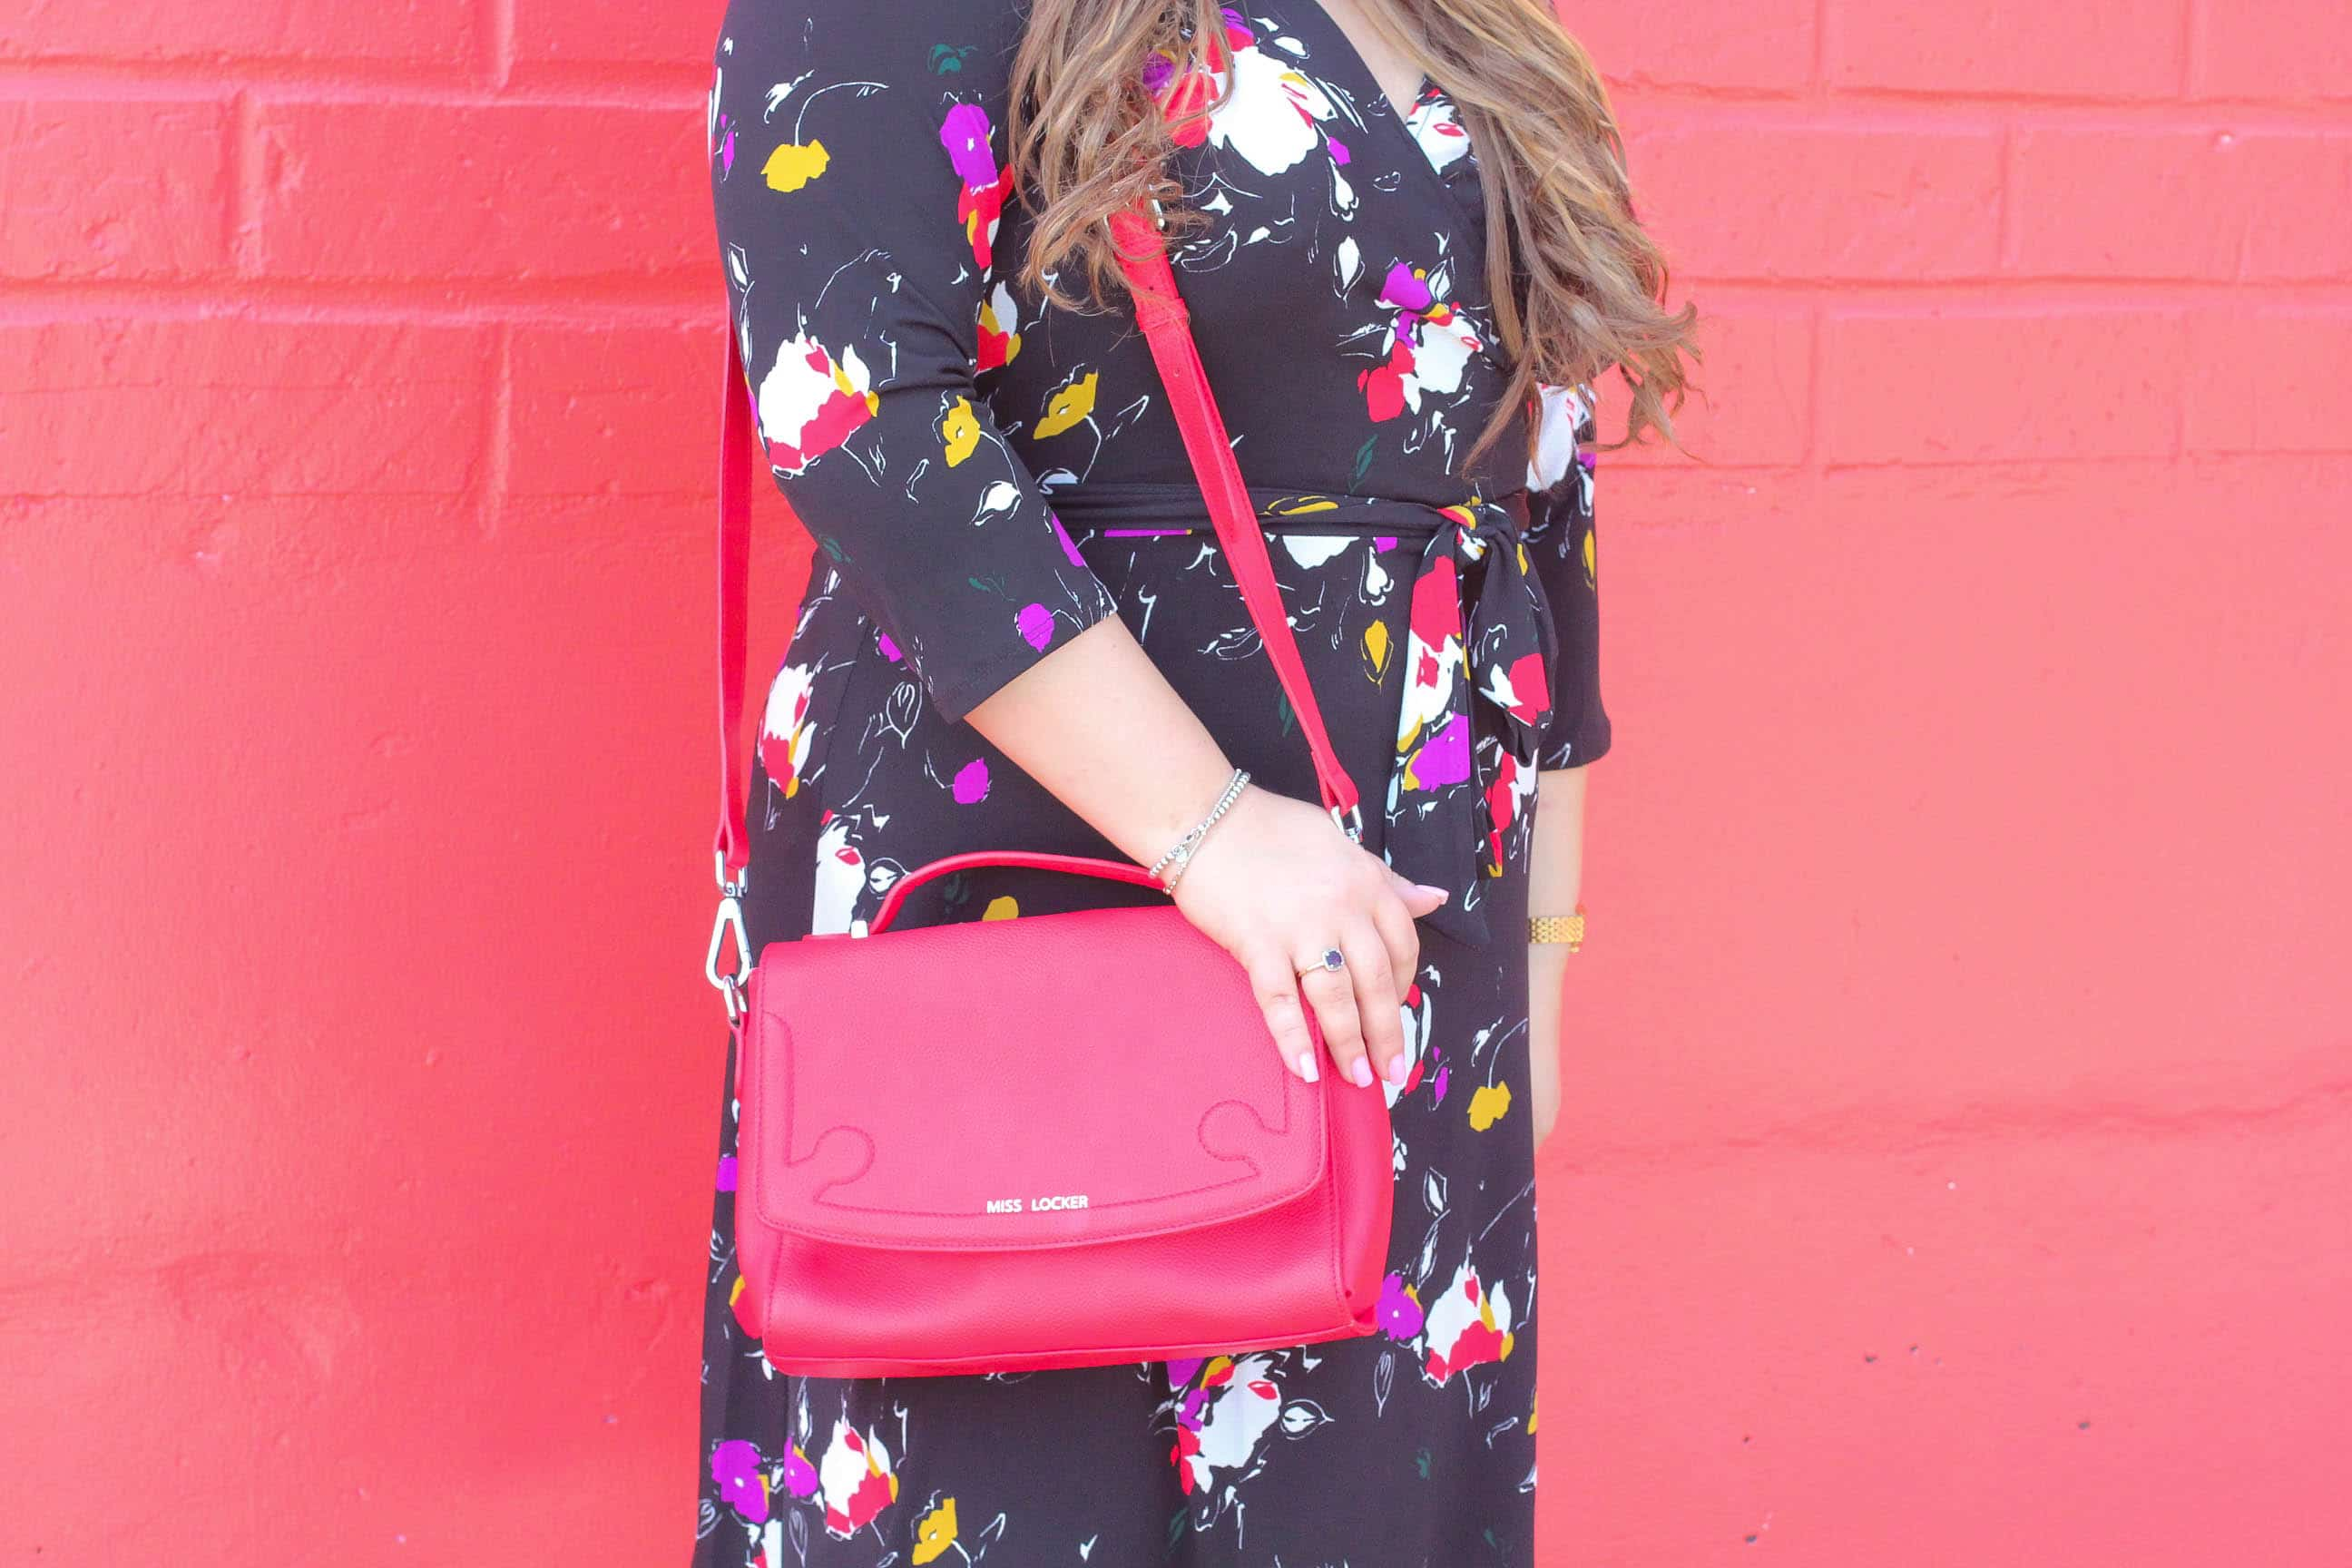 missyonmadison, missyonmadison instagram, fashion blogger, la blogger, style blogger, miss locker bags, red bag, pop of color, wall crawl, leota new york, leota new york wrap dress, fall style, nordstrom, nordstrom wrap dress, white pumps, white pointed toe pumps, bloglovin, style goals, style diaries, fashion goals, fashion diaries,